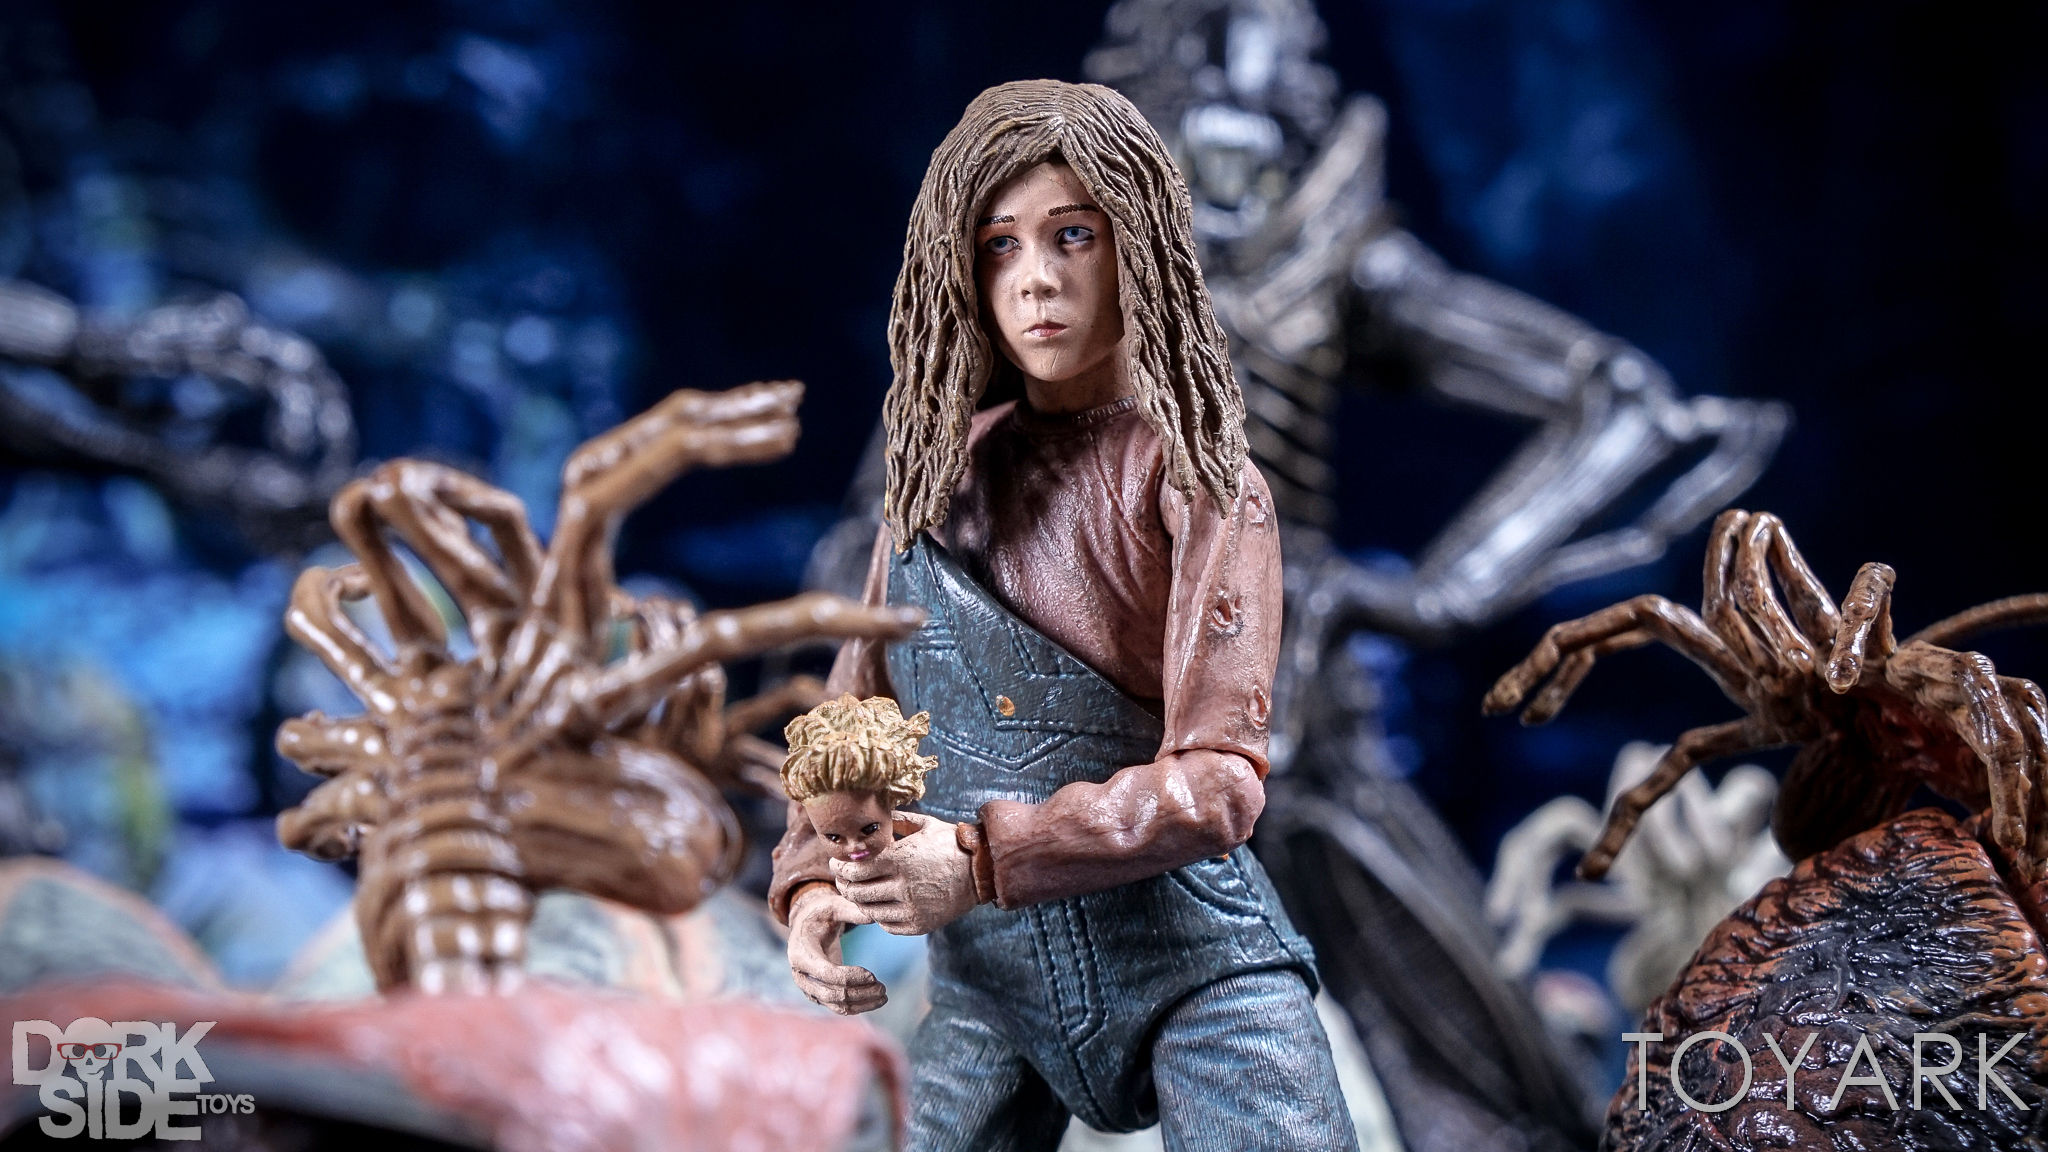 http://news.toyark.com/wp-content/uploads/sites/4/2016/12/Aliens-NECA-Ripley-and-Newt-Set-024.jpg